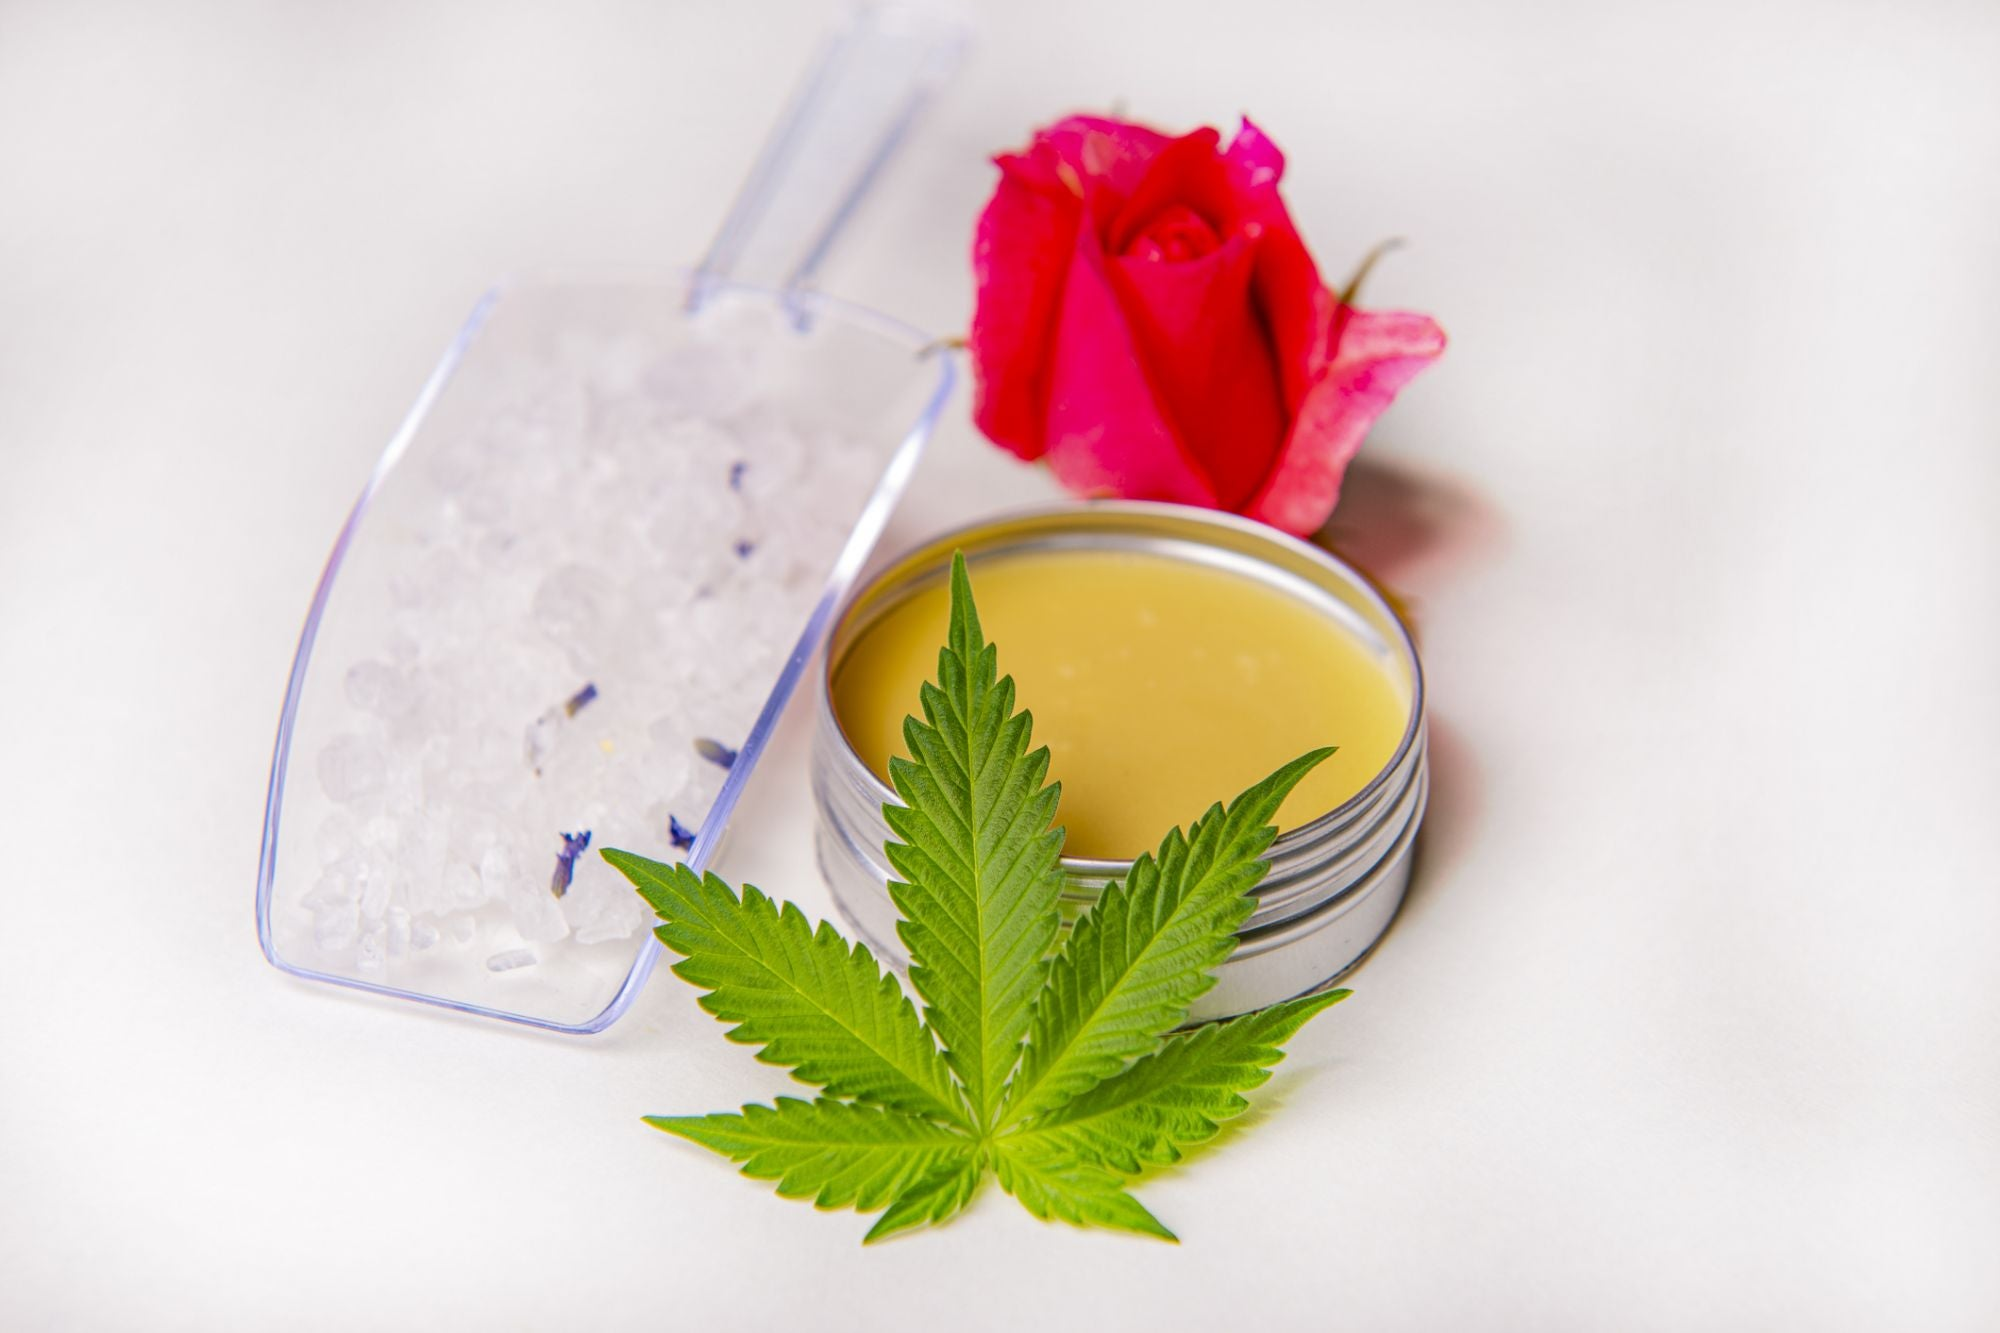 CPG Lessons For The CBD Industry